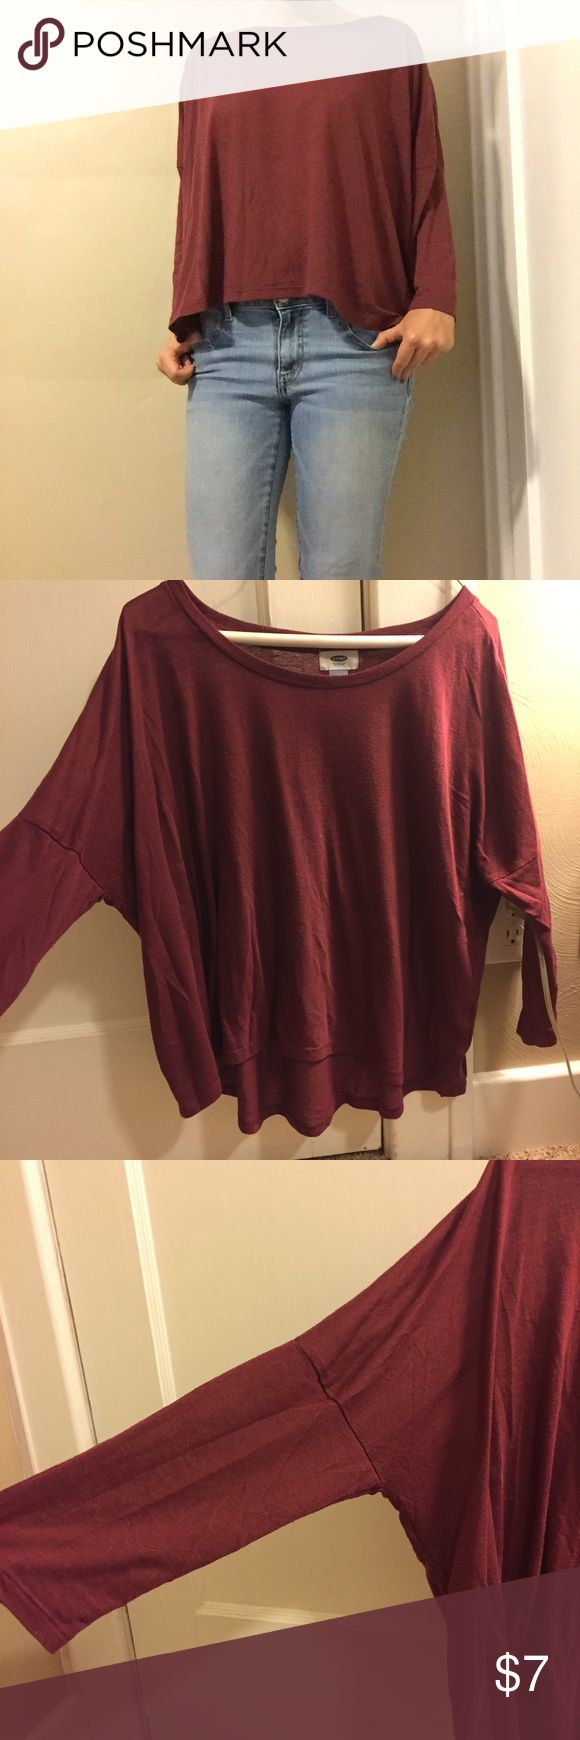 OLD NAVY slouchy long sleeve top Maroon long sleeved top from old navy. It is slightly slouchy in the arms, perfect for fall 💕 Old Navy Tops Tees - Long Sleeve